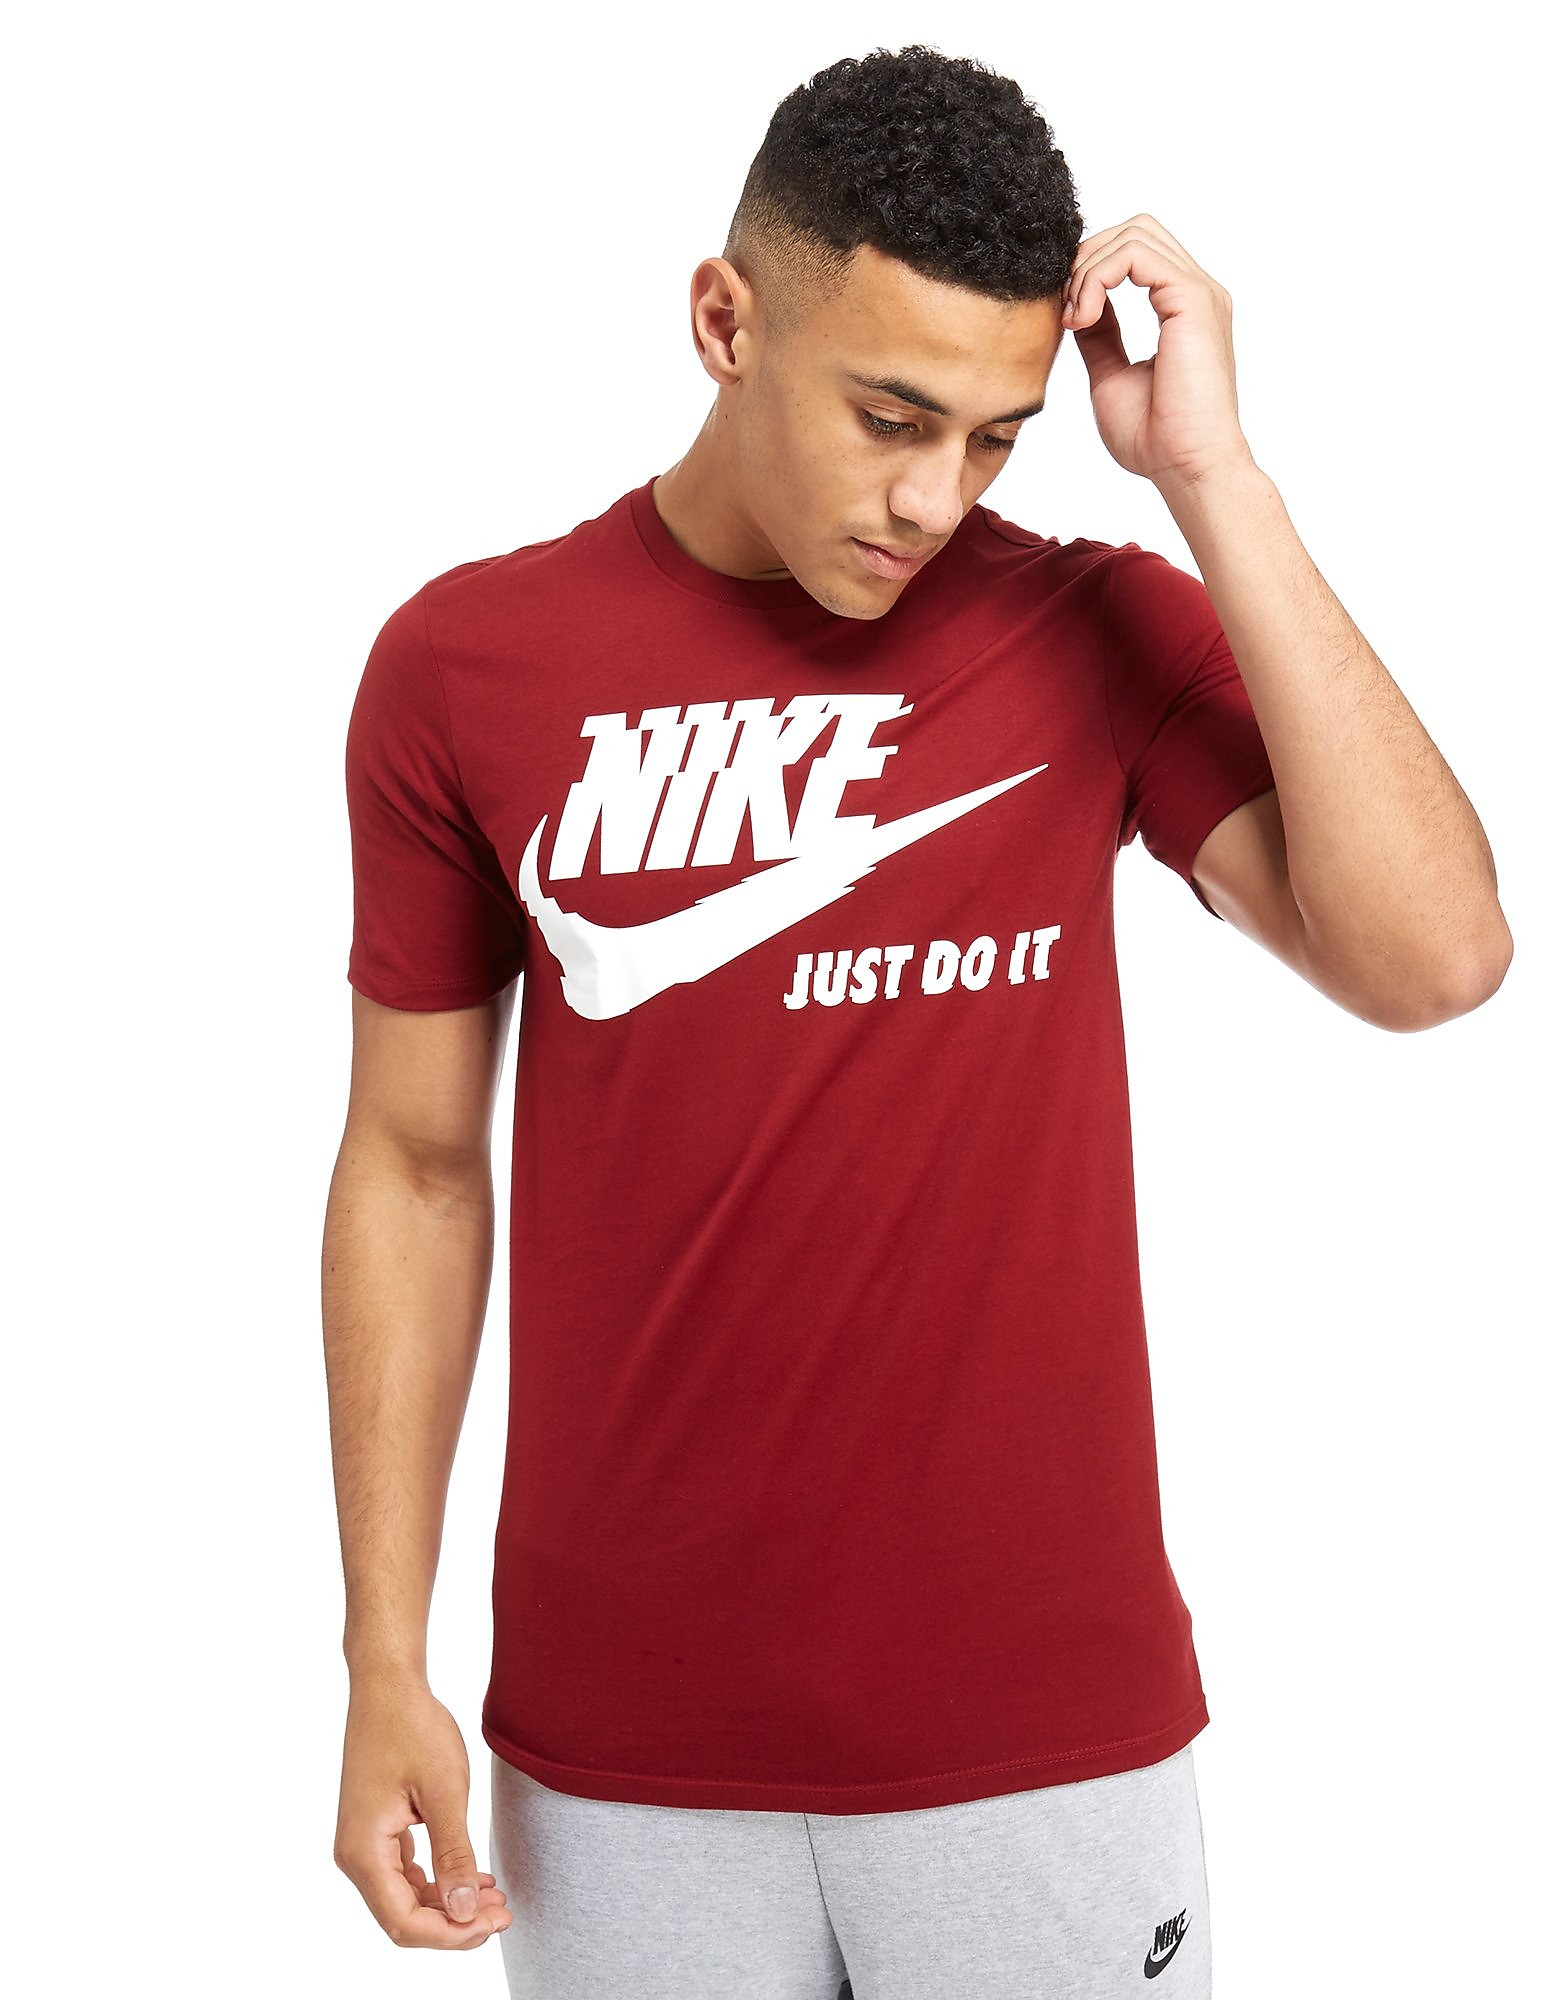 Nike camiseta Futura Just Do It